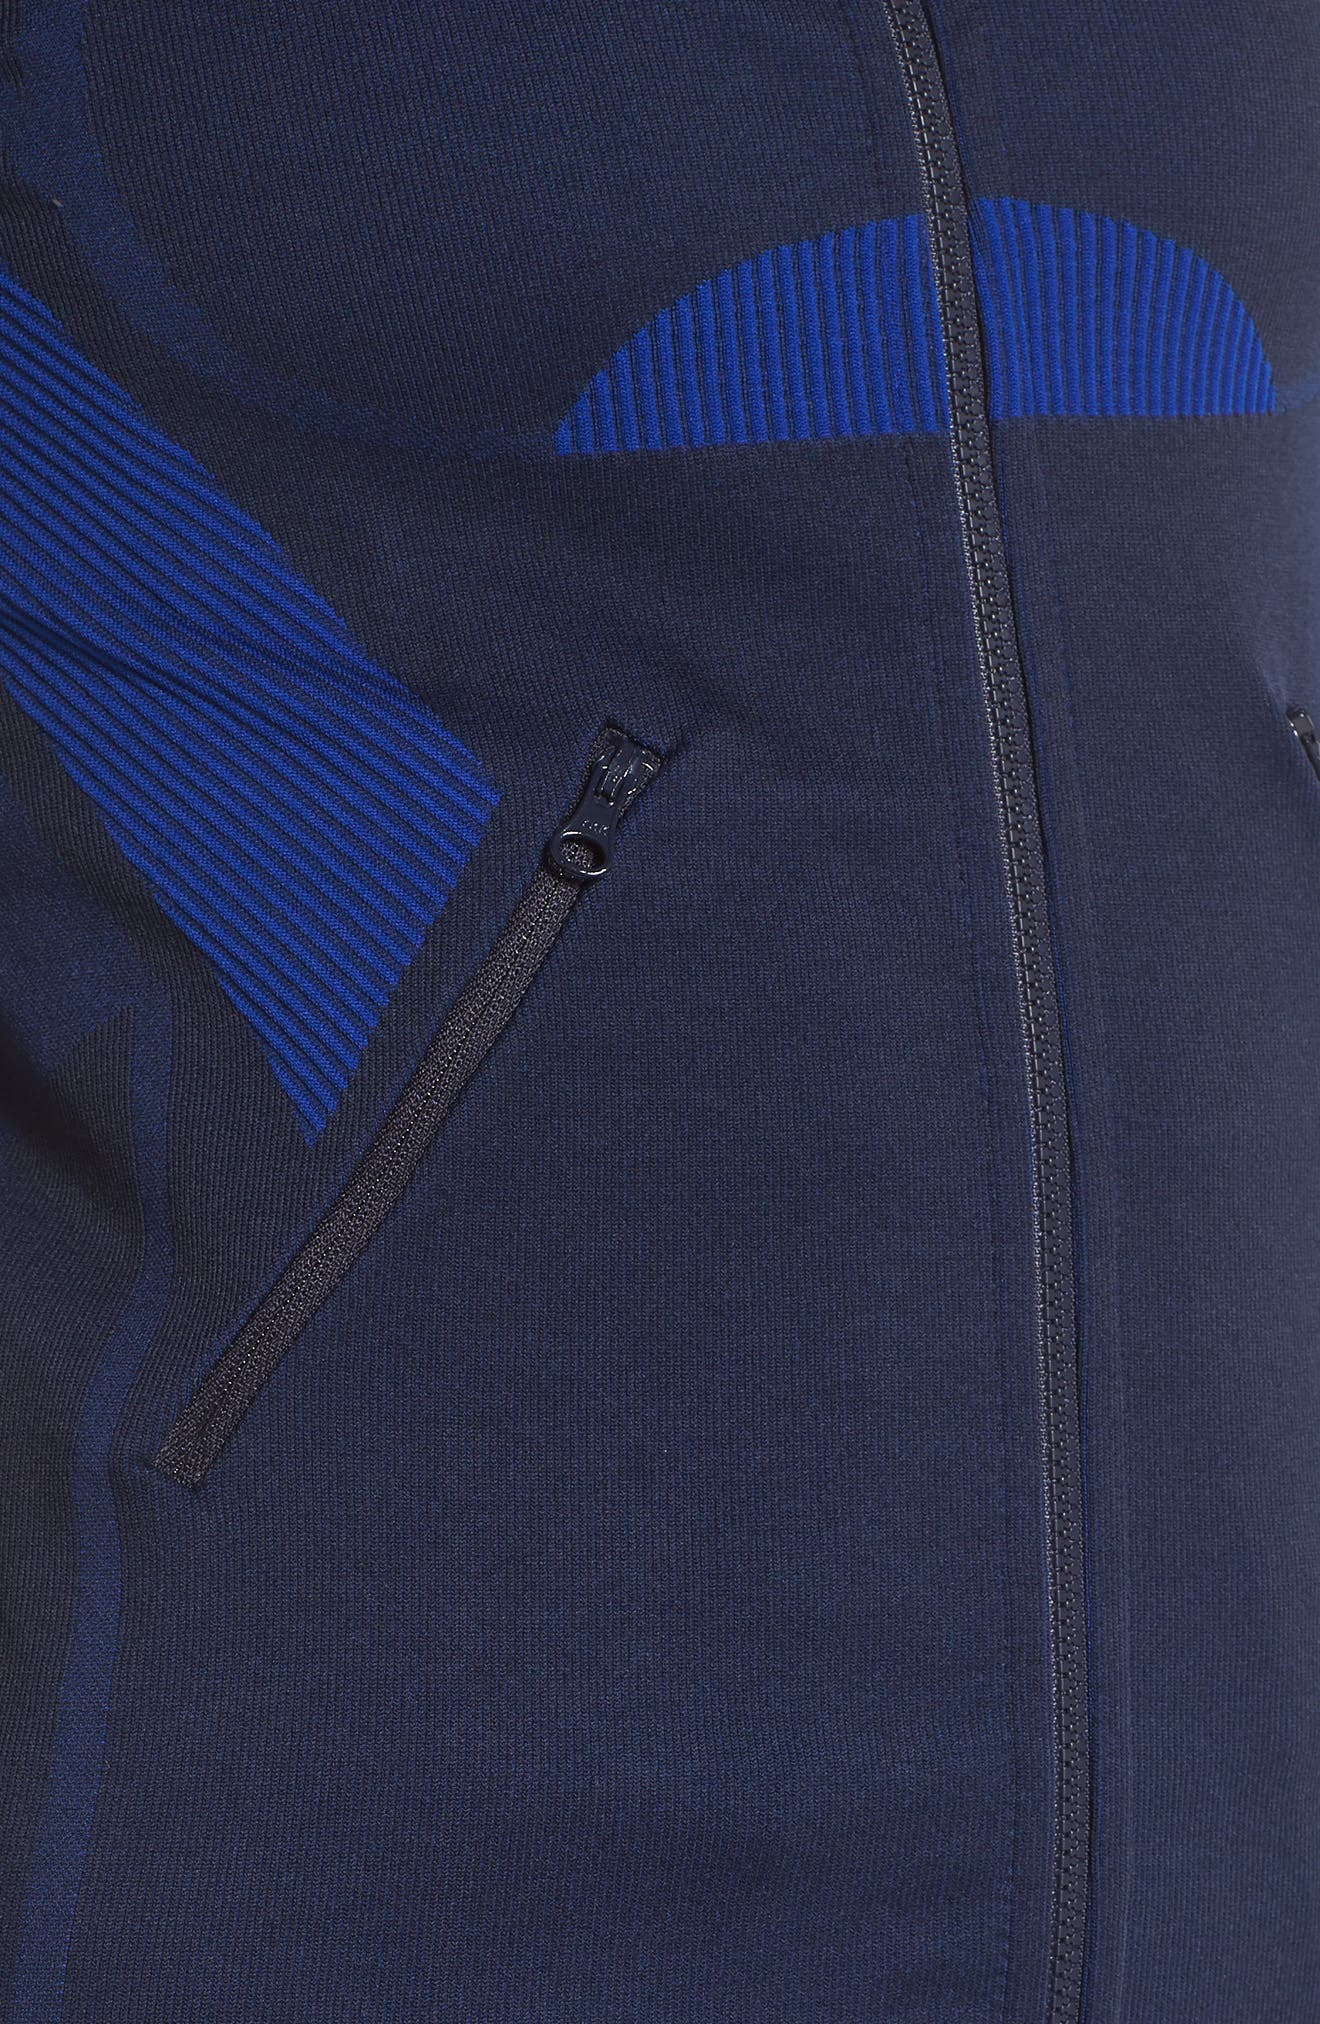 Spright Jacket,                             Alternate thumbnail 6, color,                             400